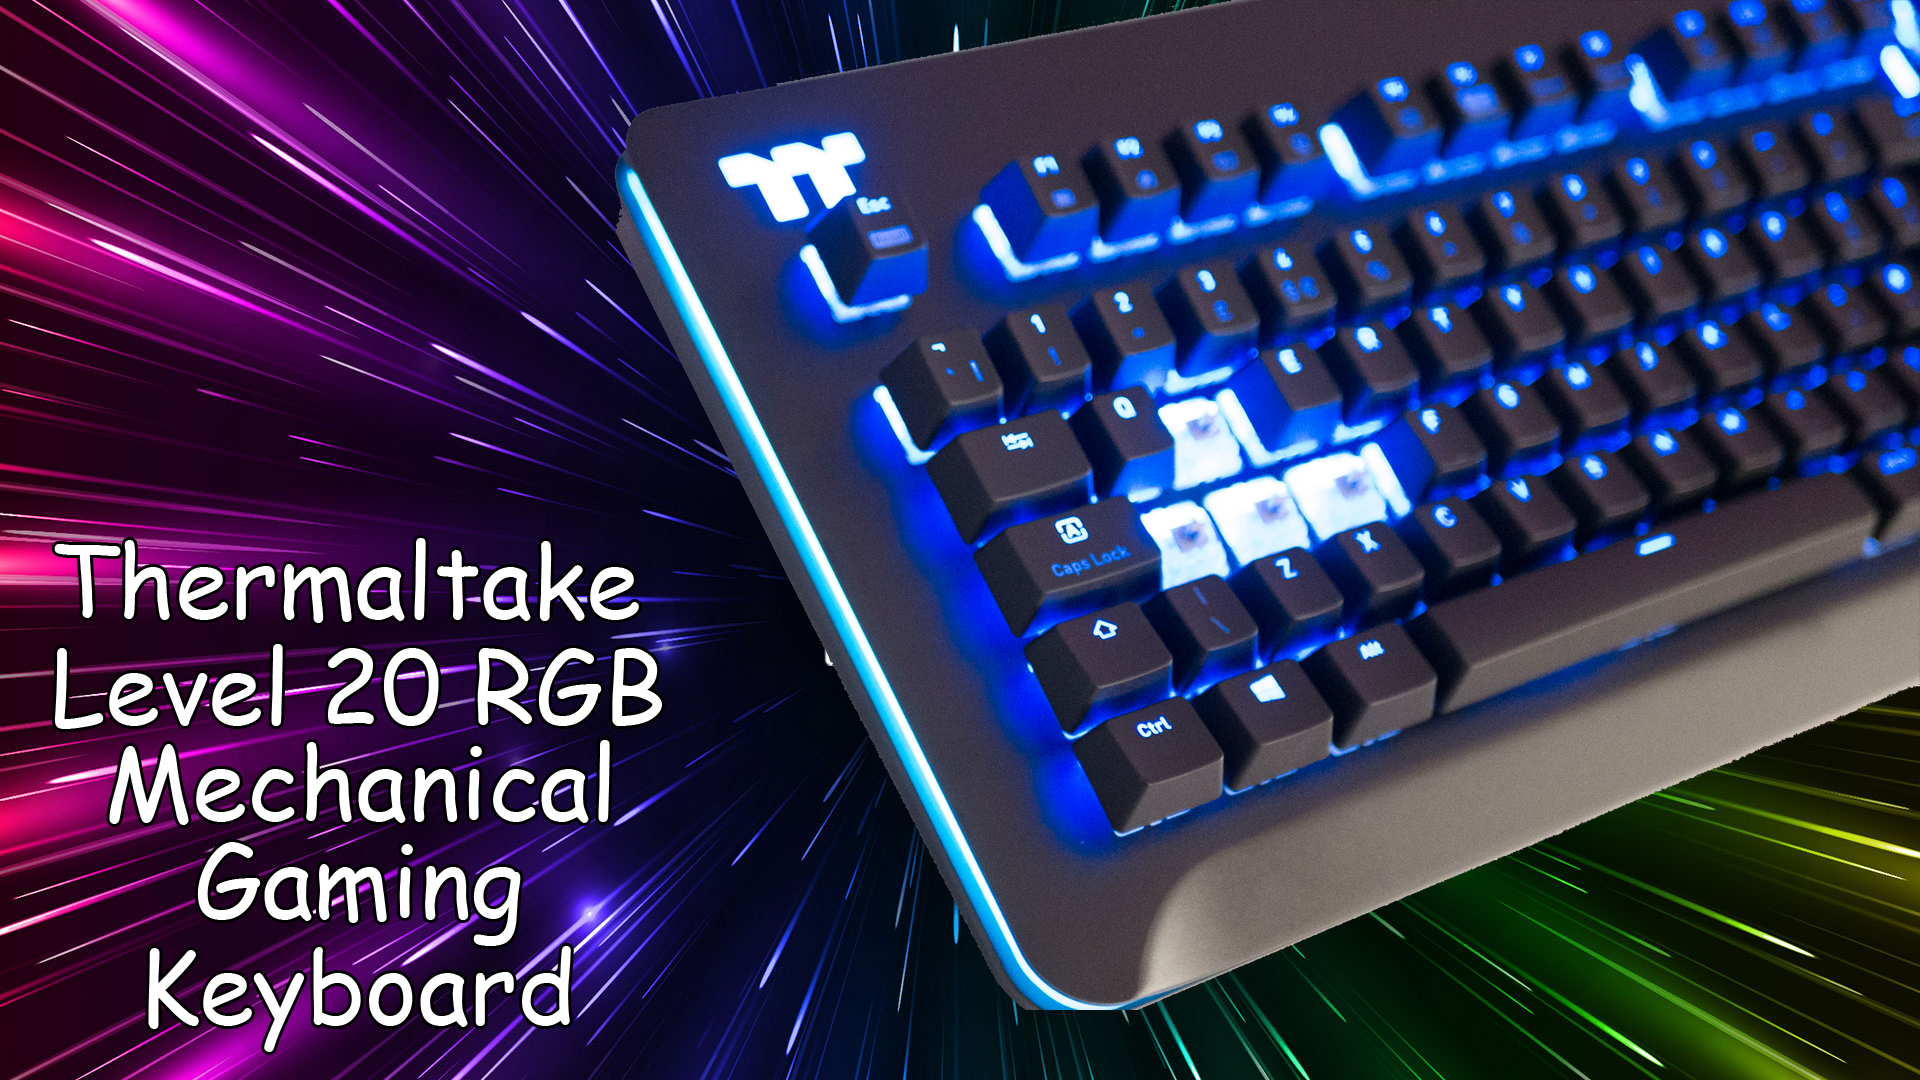 Thermaltake Level 20 RGB Mechanical Gaming Keyboard Review